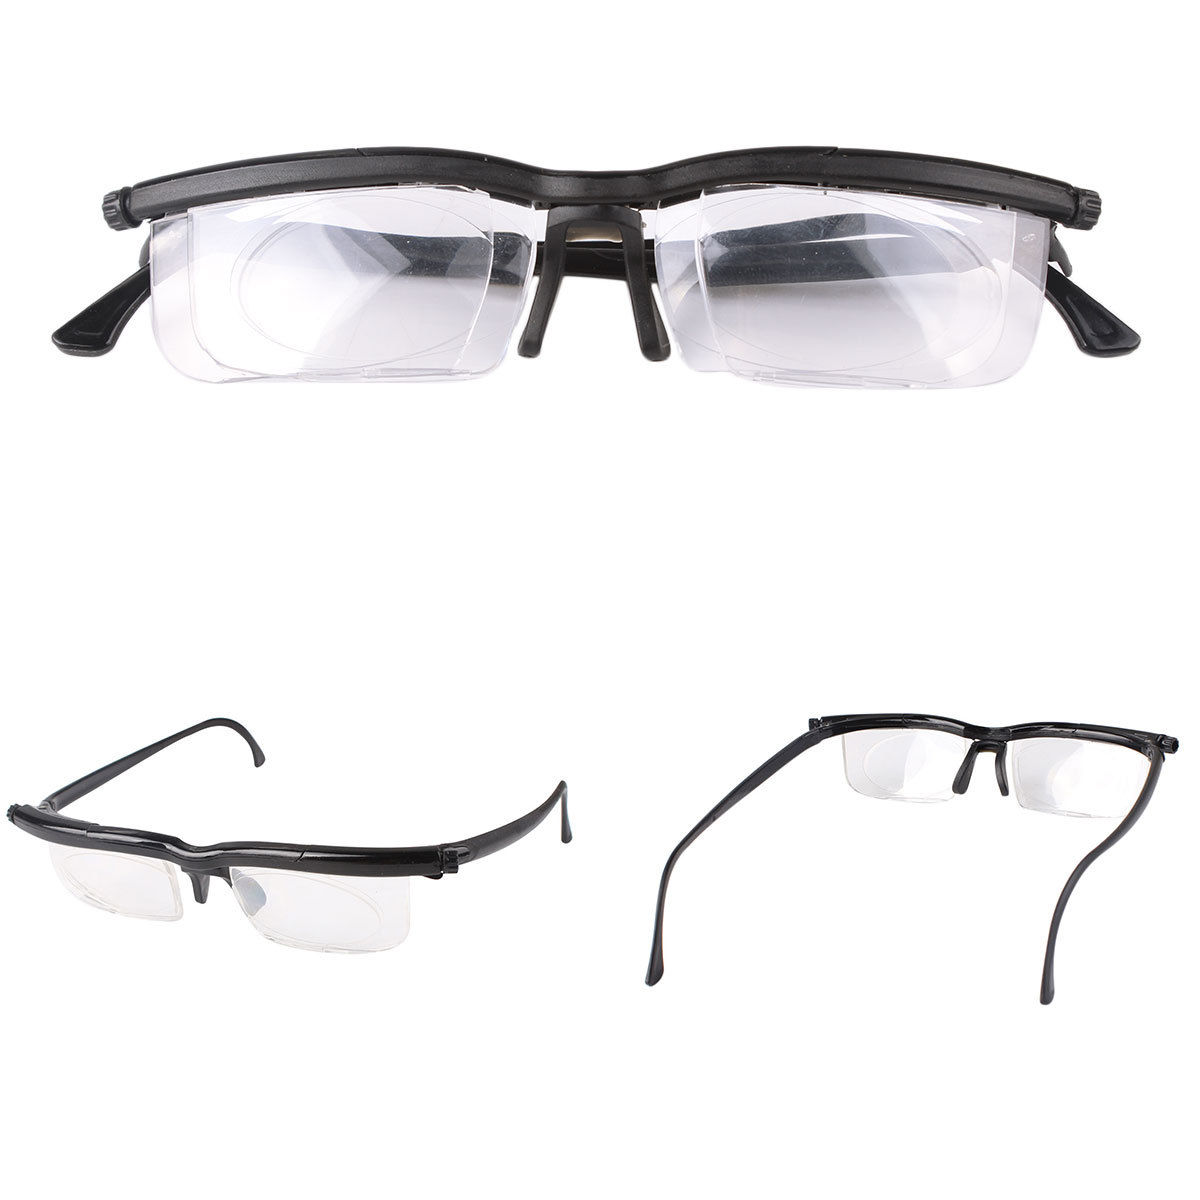 f13406972f3 2017 new Dial Adjustable Vision Lens Eyeglasses As Seen On